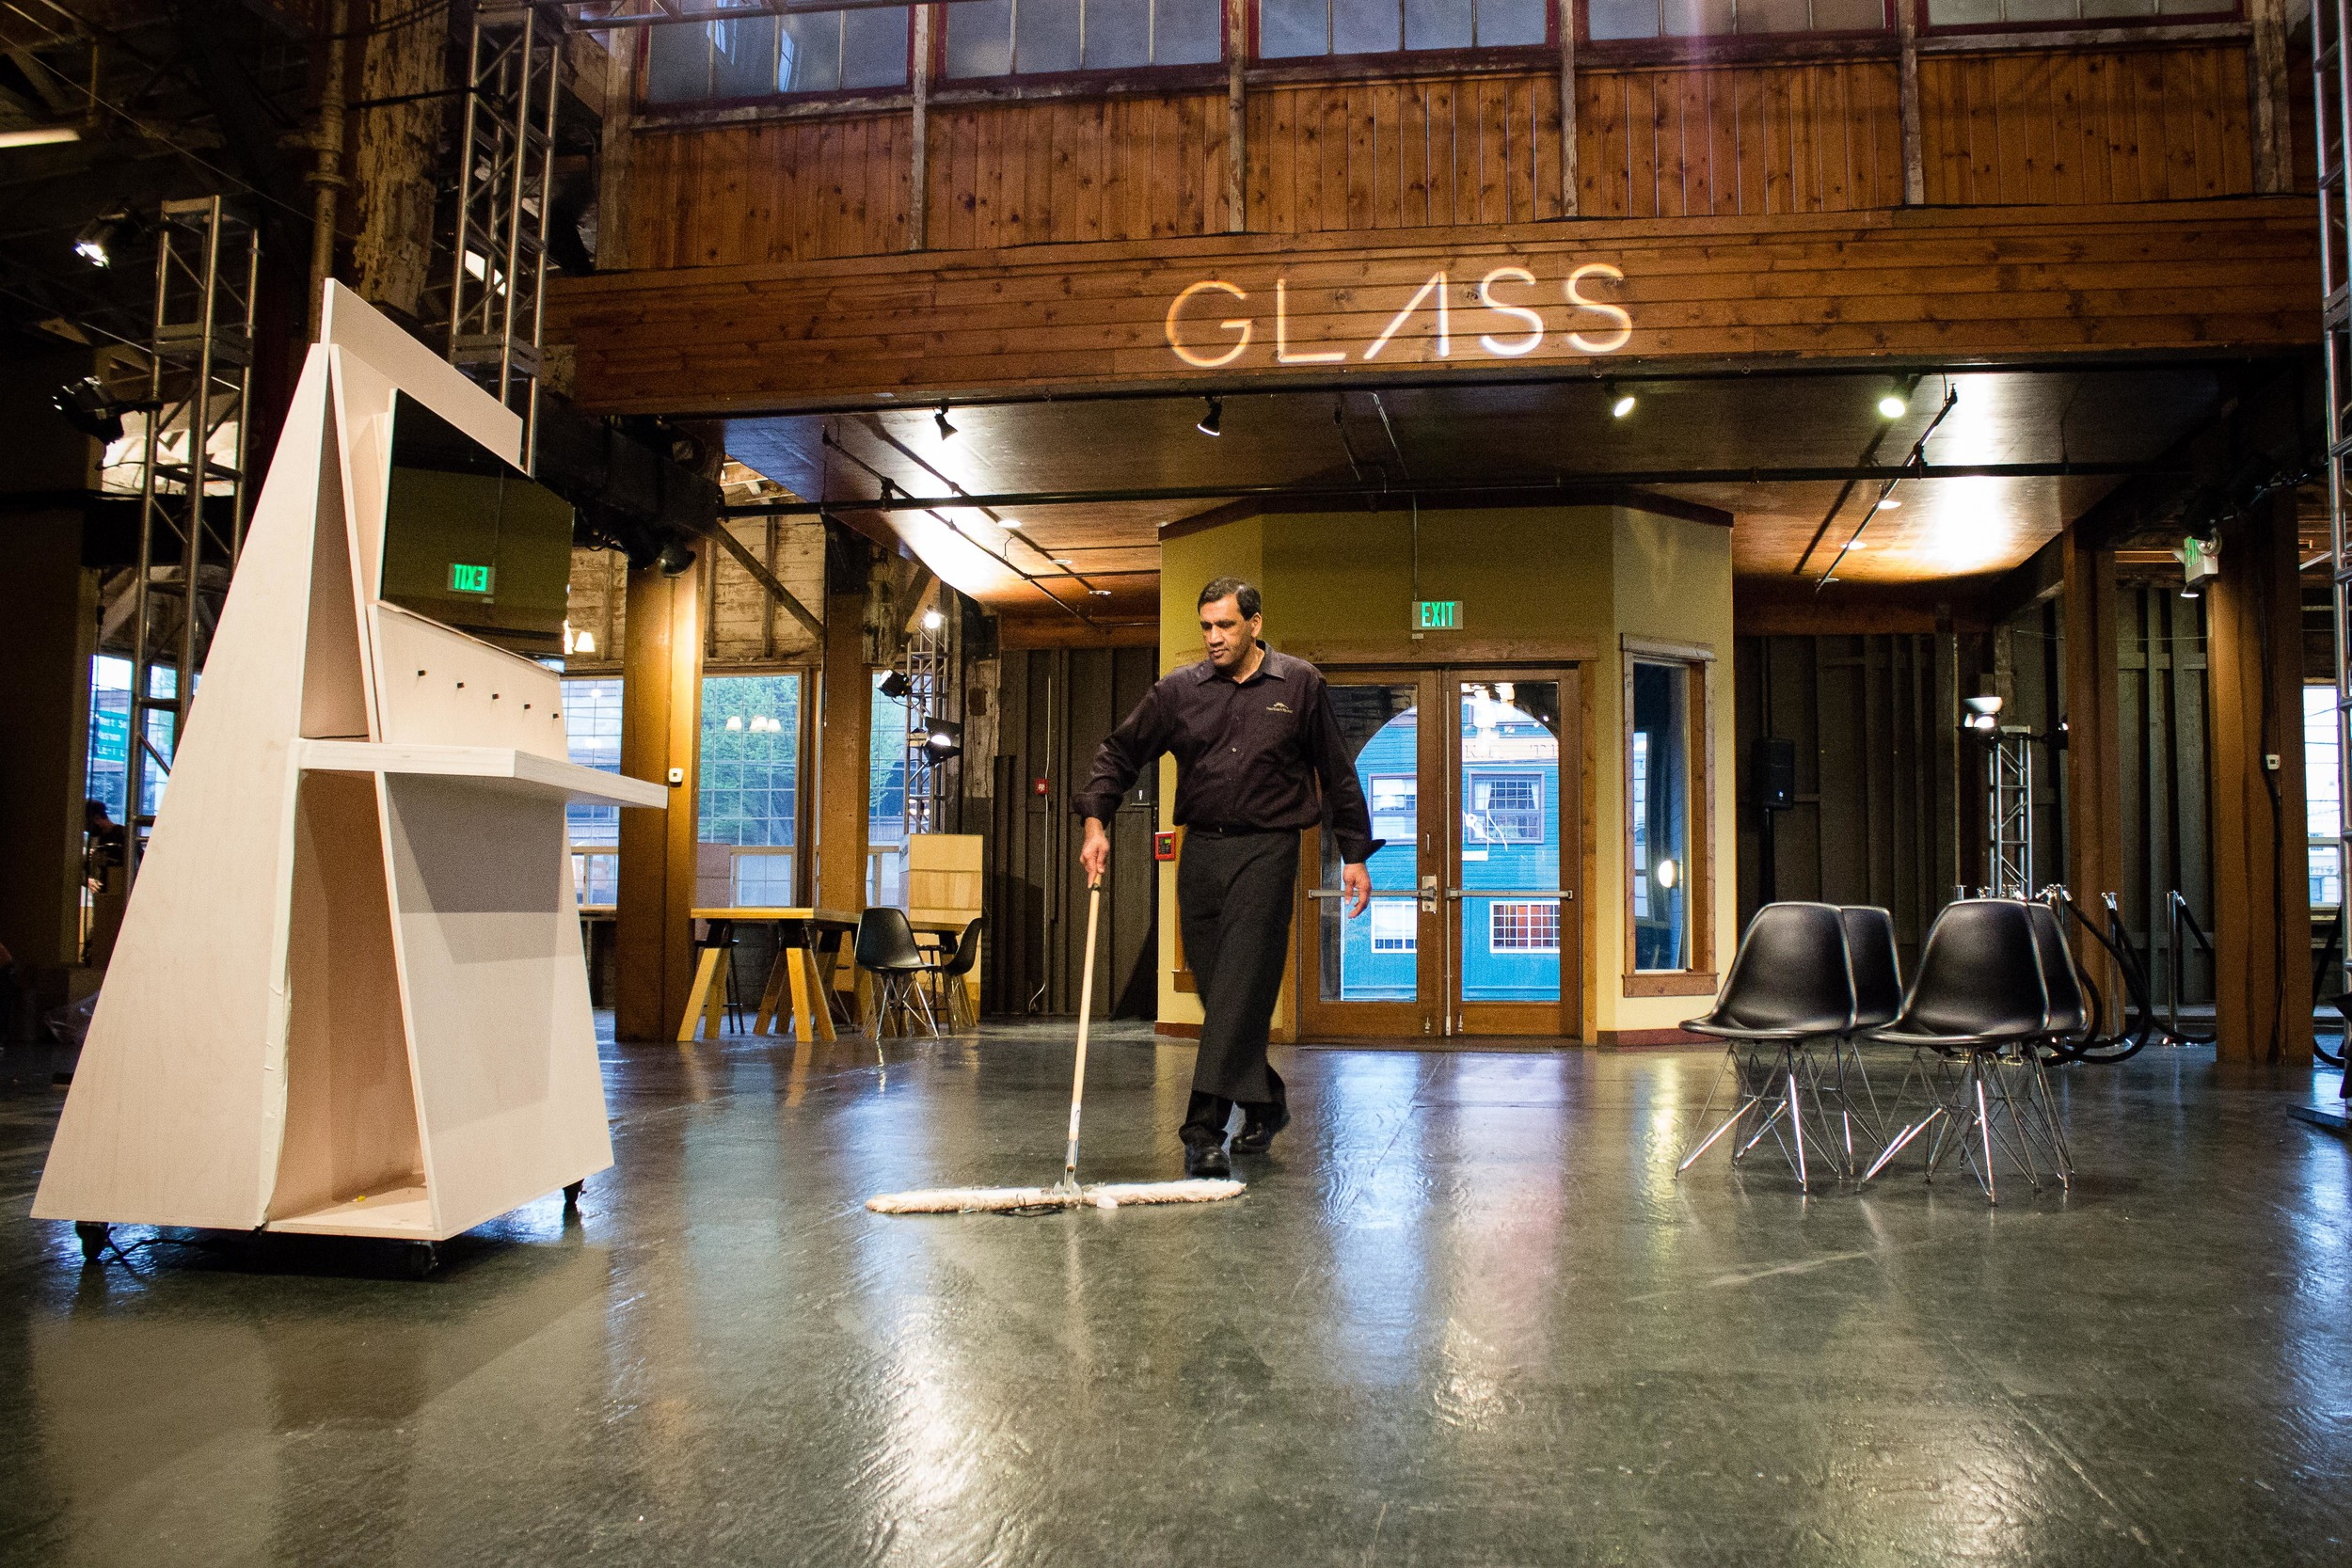 In April 2014, Glass demos and Explorer events were hosted at Seattle's Sodo Park and London Plane  - as in the past, Glass ops and external vendors worked together to ensure that things went smoothly.